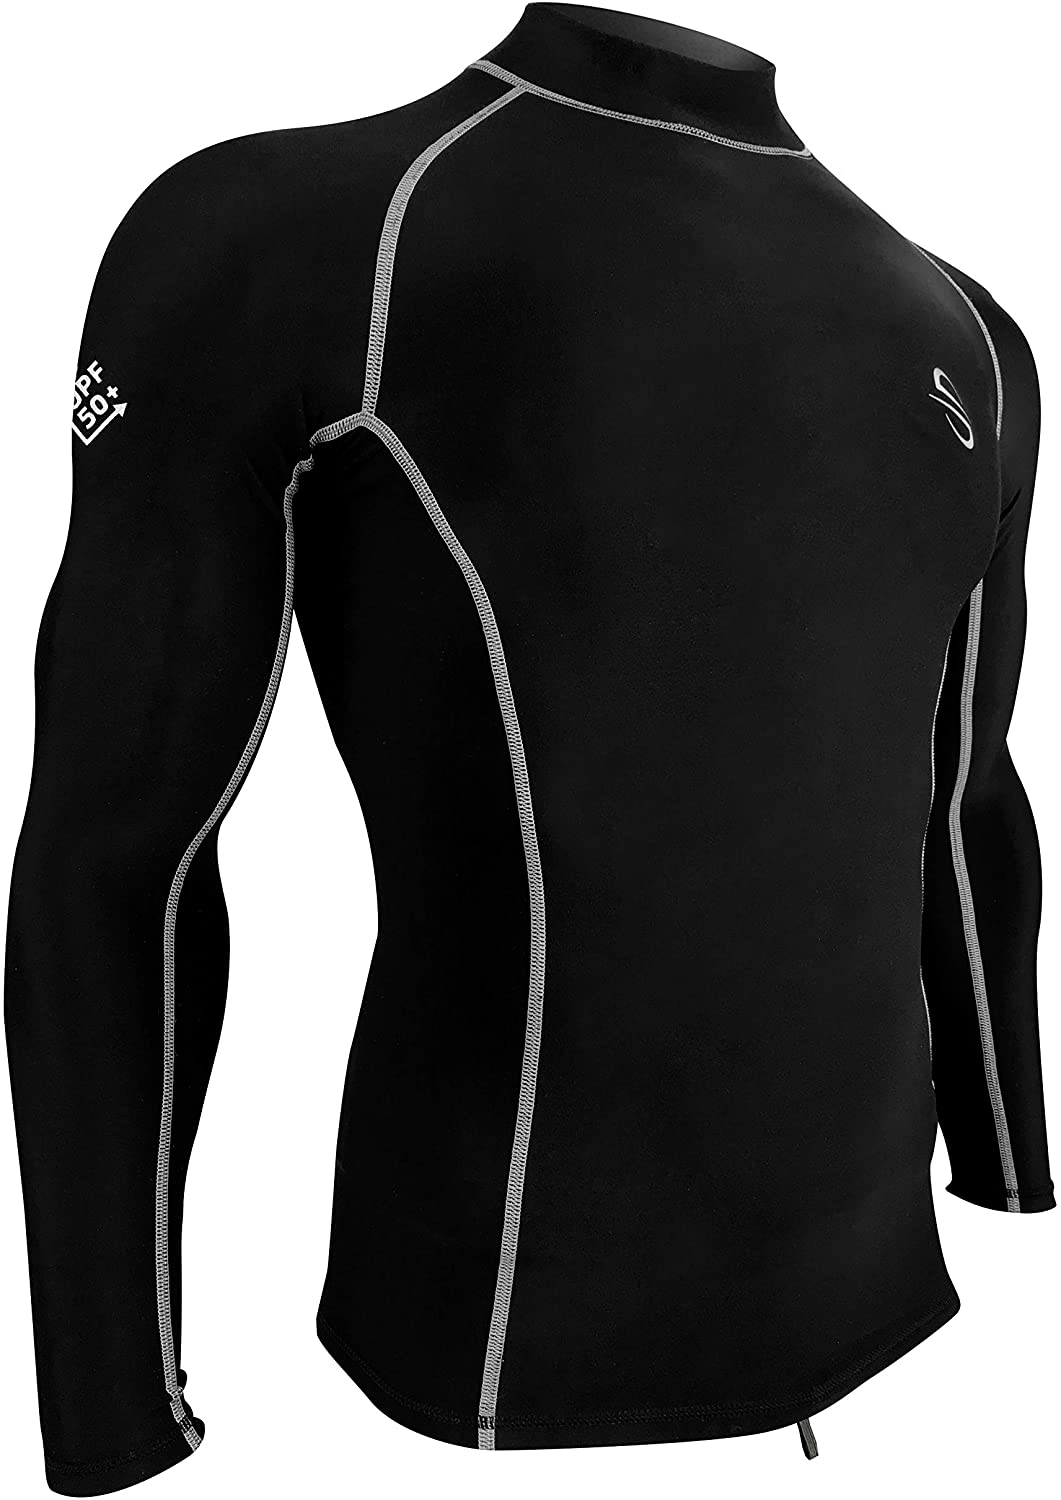 Platinum Sun Unisex Fleece Rash Guard Swim UV Shirt Swimsuit Long Sleeve - UV Protection Water Shirts for Men Women UPF 50+